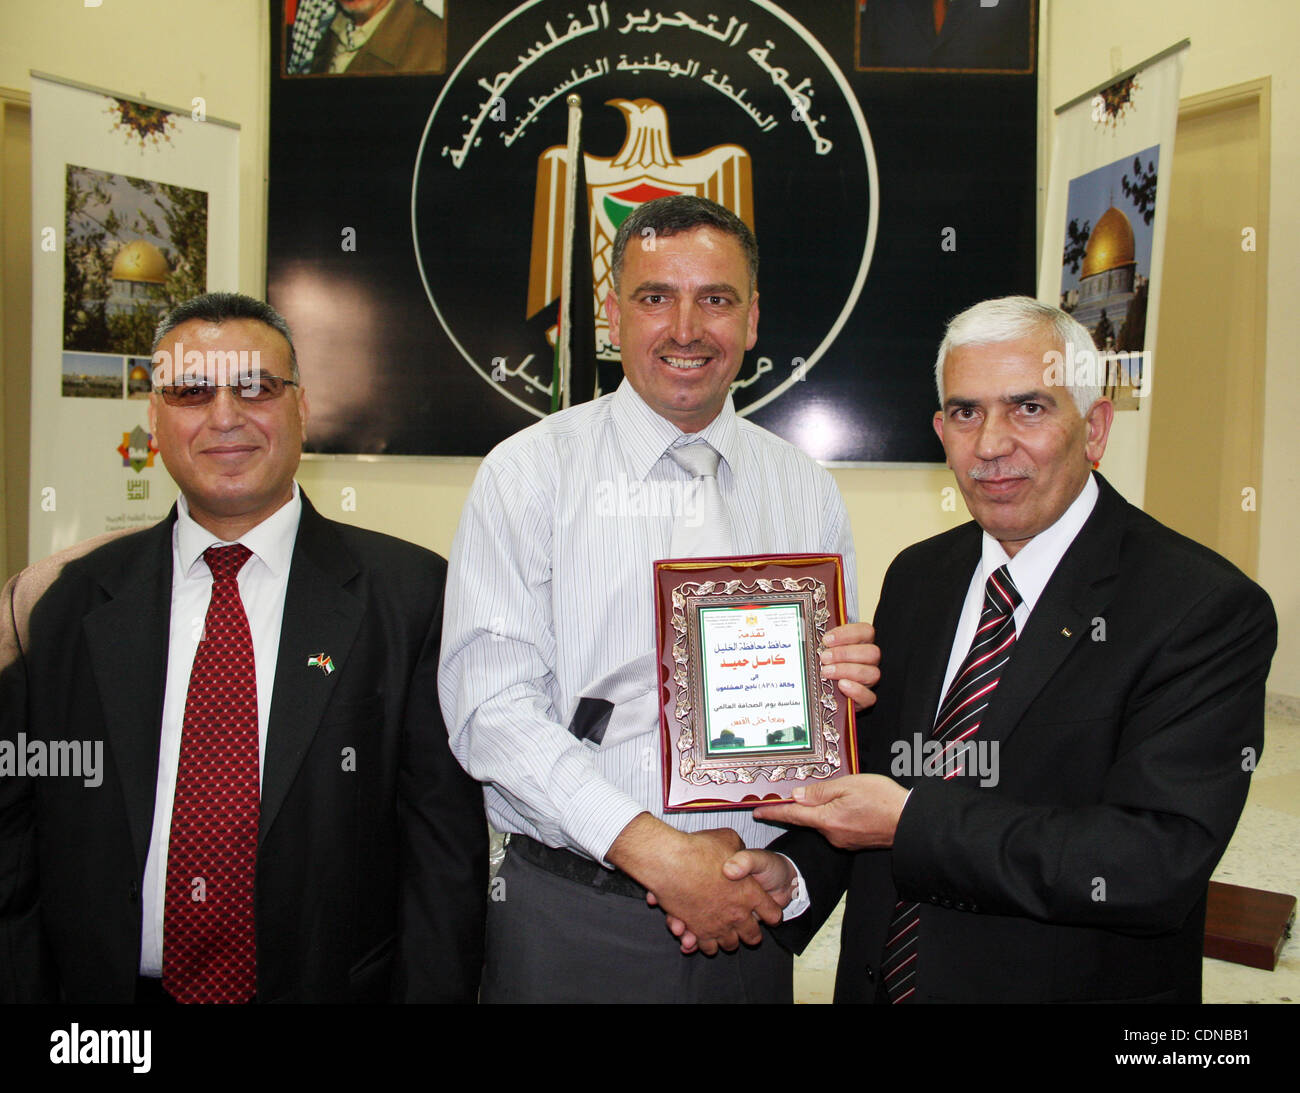 Palestinian Hebron governor, Kamel Hamed honors APAimages photojournalist Najeh Hashlamoun in occasion of Journalist - Stock Image